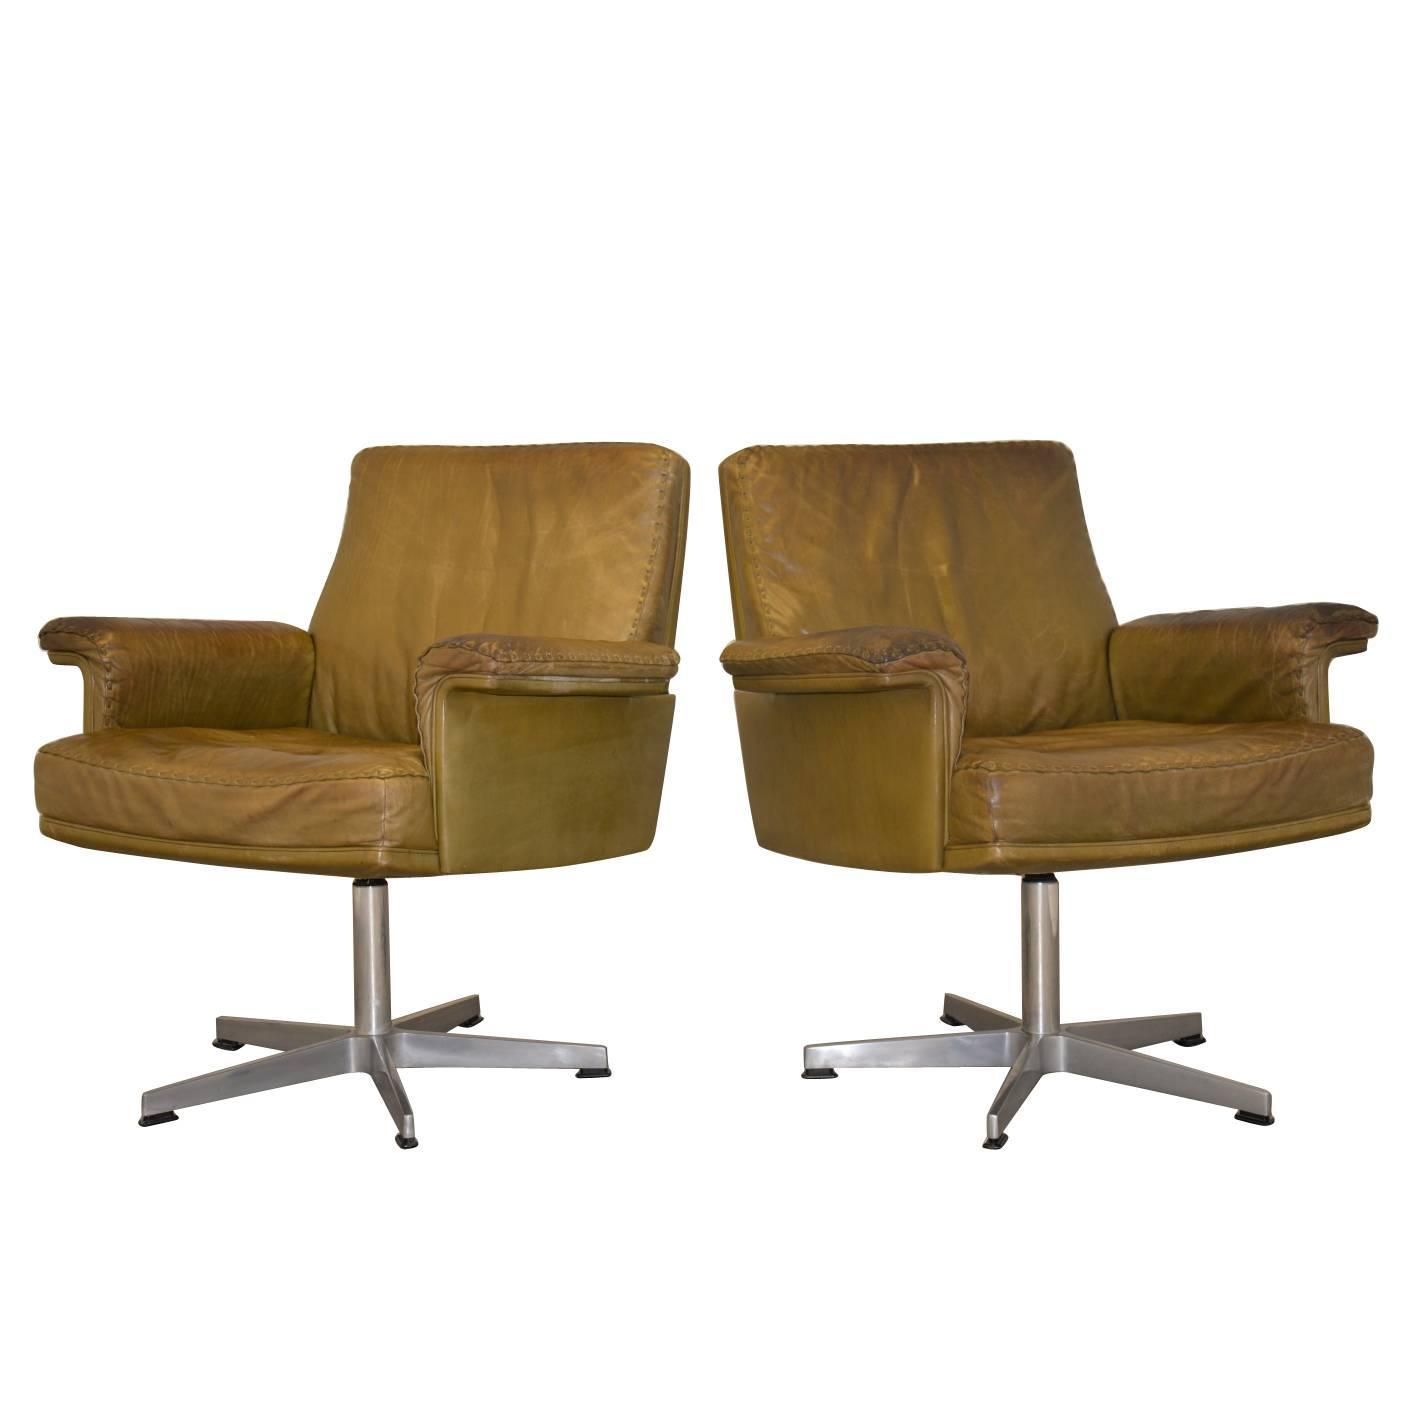 Vintage leather swivel chair - Vintage De Sede Ds 35 Executive Desk Swivel Armchairs 1960 S For Sale At 1stdibs